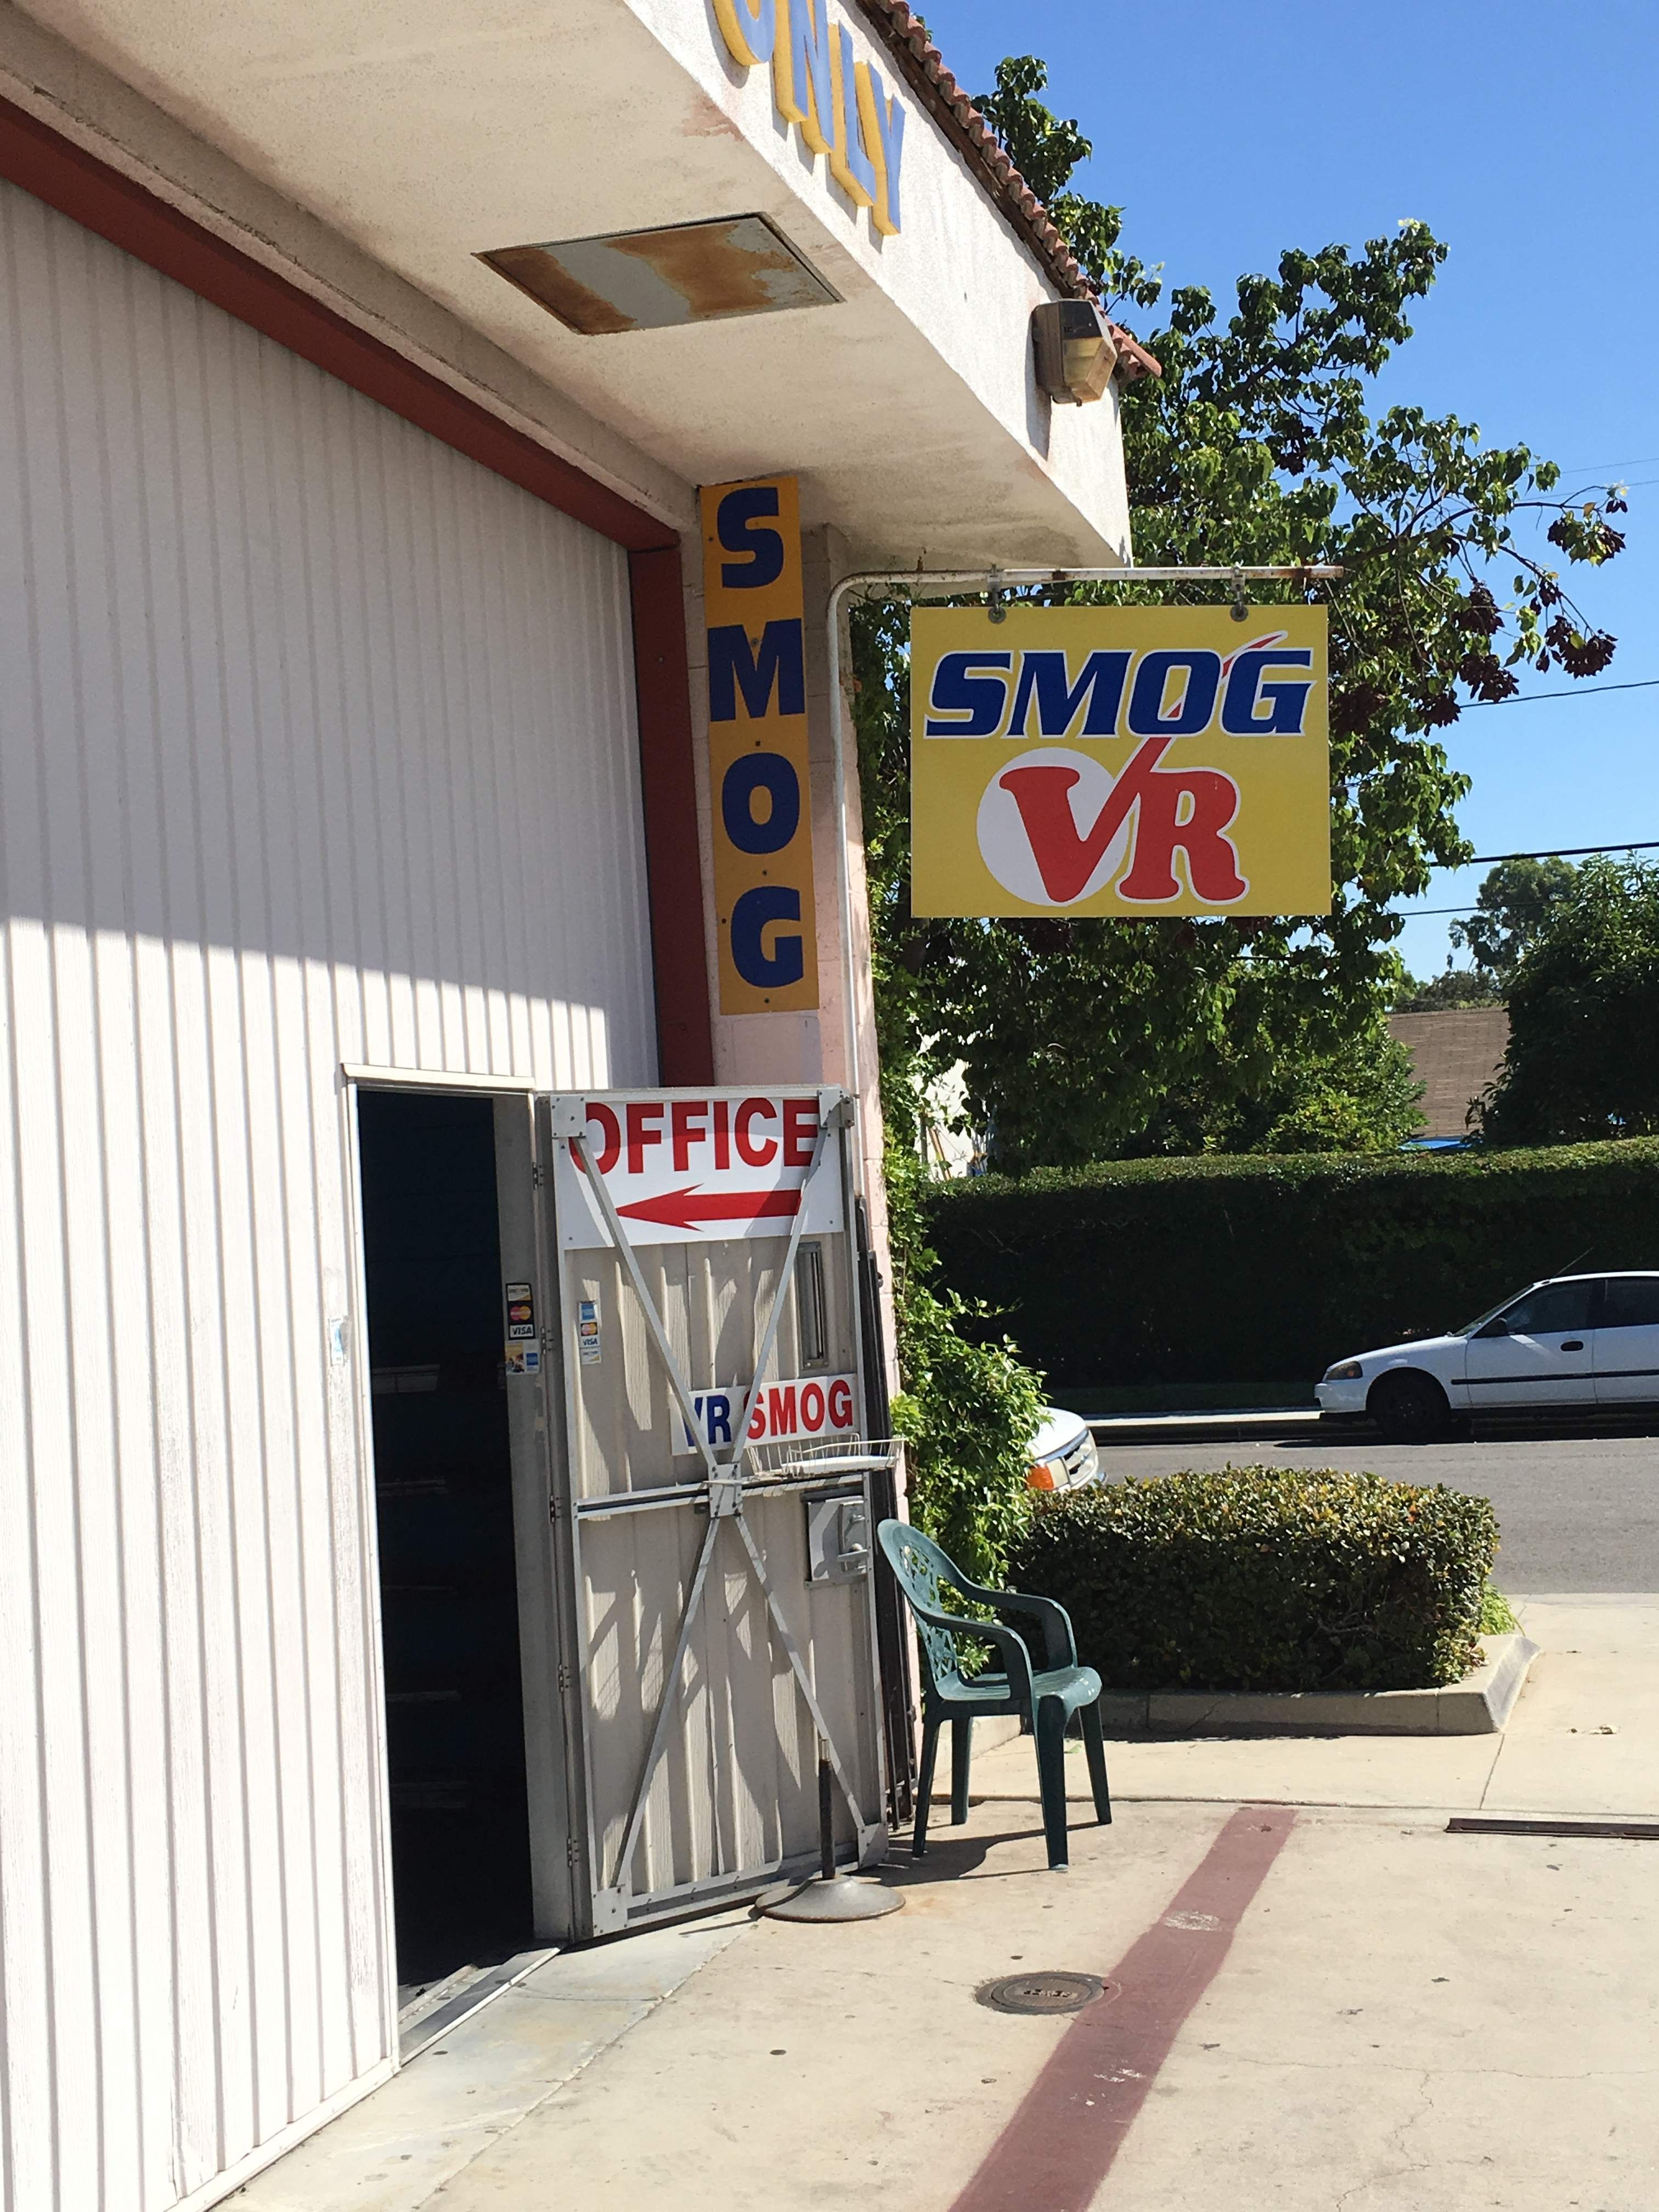 VR smog check test only image 1